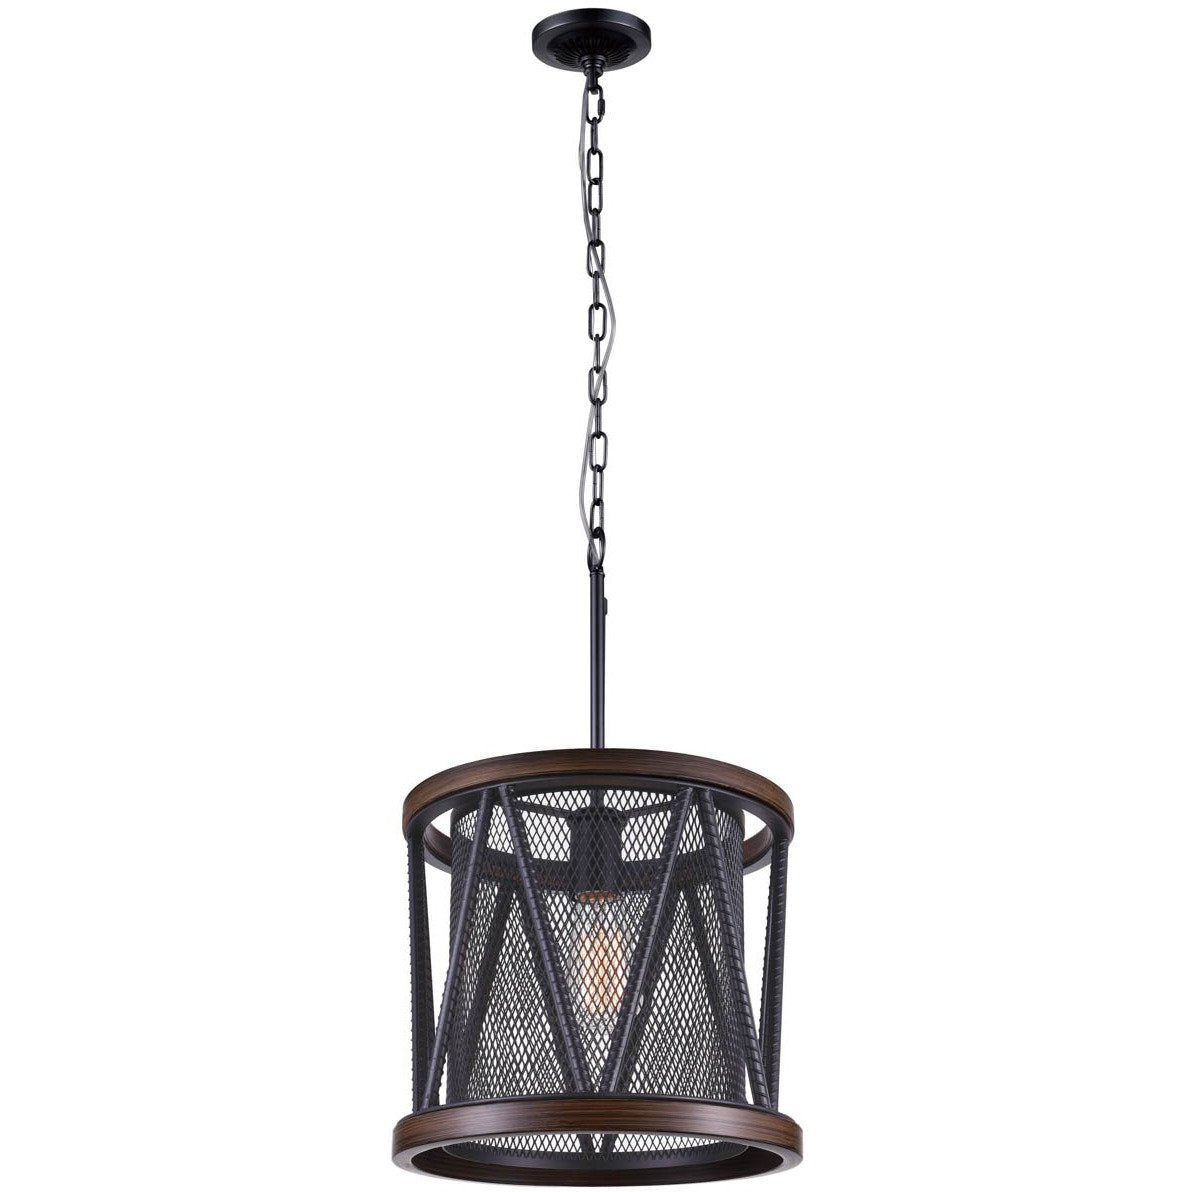 CWI Lighting Mini Chandeliers Pewter Parsh 1 Light Drum Shade Mini Chandelier with Pewter finish by CWI Lighting 9954P13-1-101